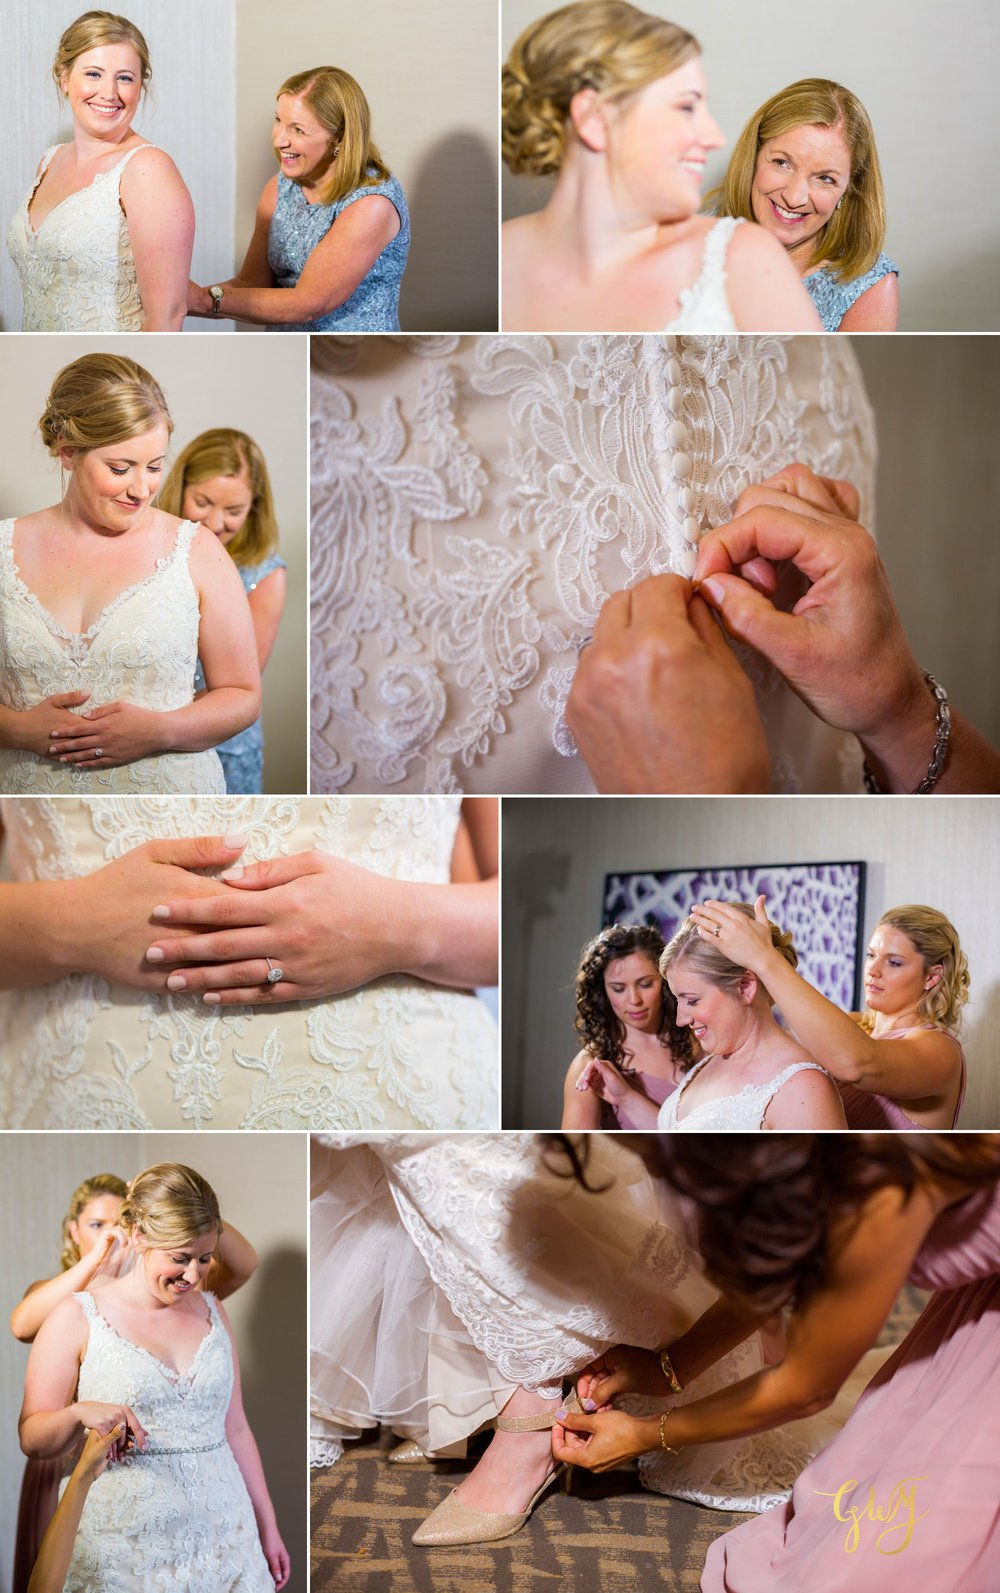 Javier + Kari Avenue of the Arts First Look Vintage Rose Wedding Ceremony Reception by Glass Woods Media 4.jpg